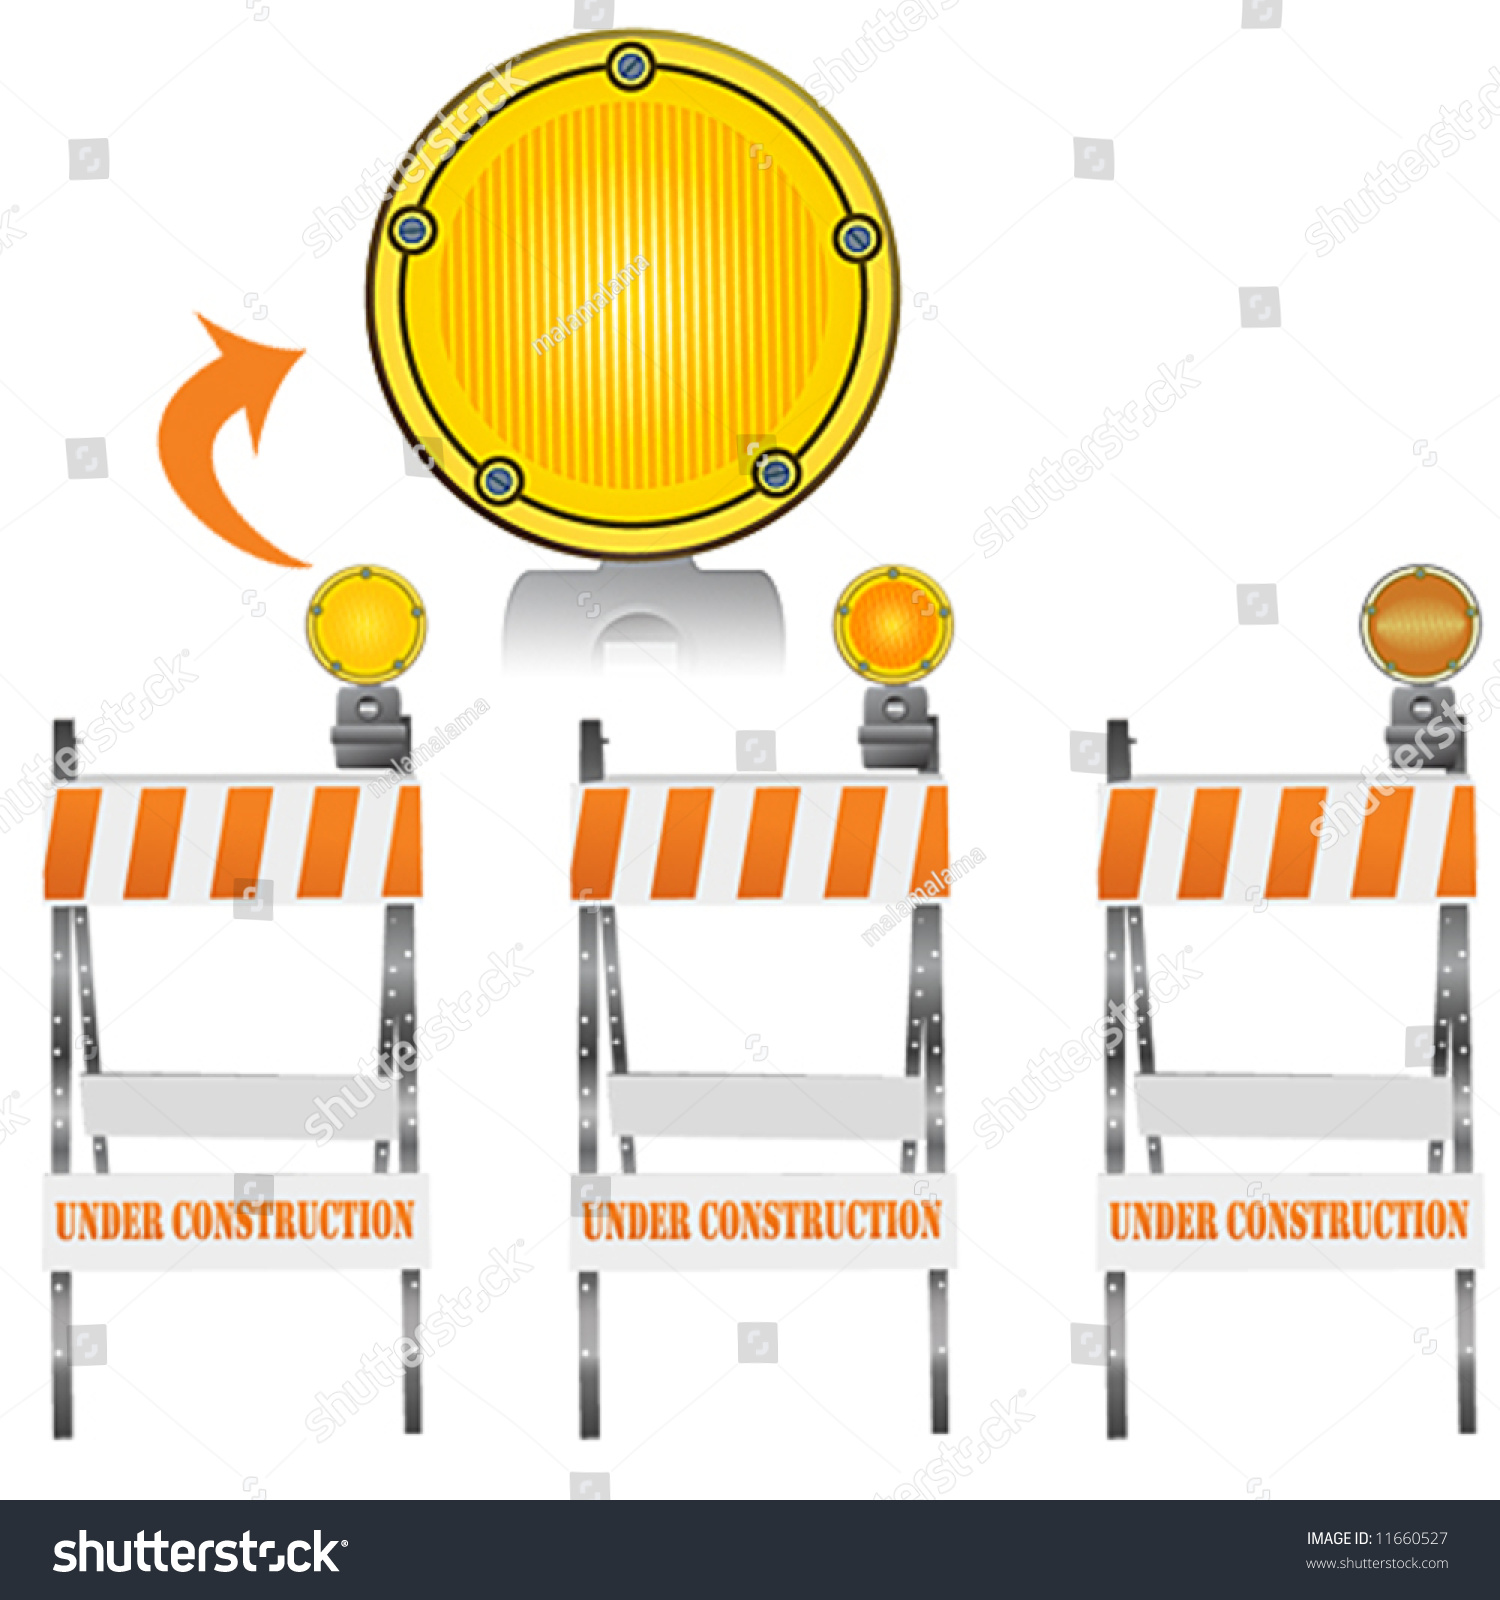 Road Barricade Signs Stock Vector Three Versions Of A Construction Barricade